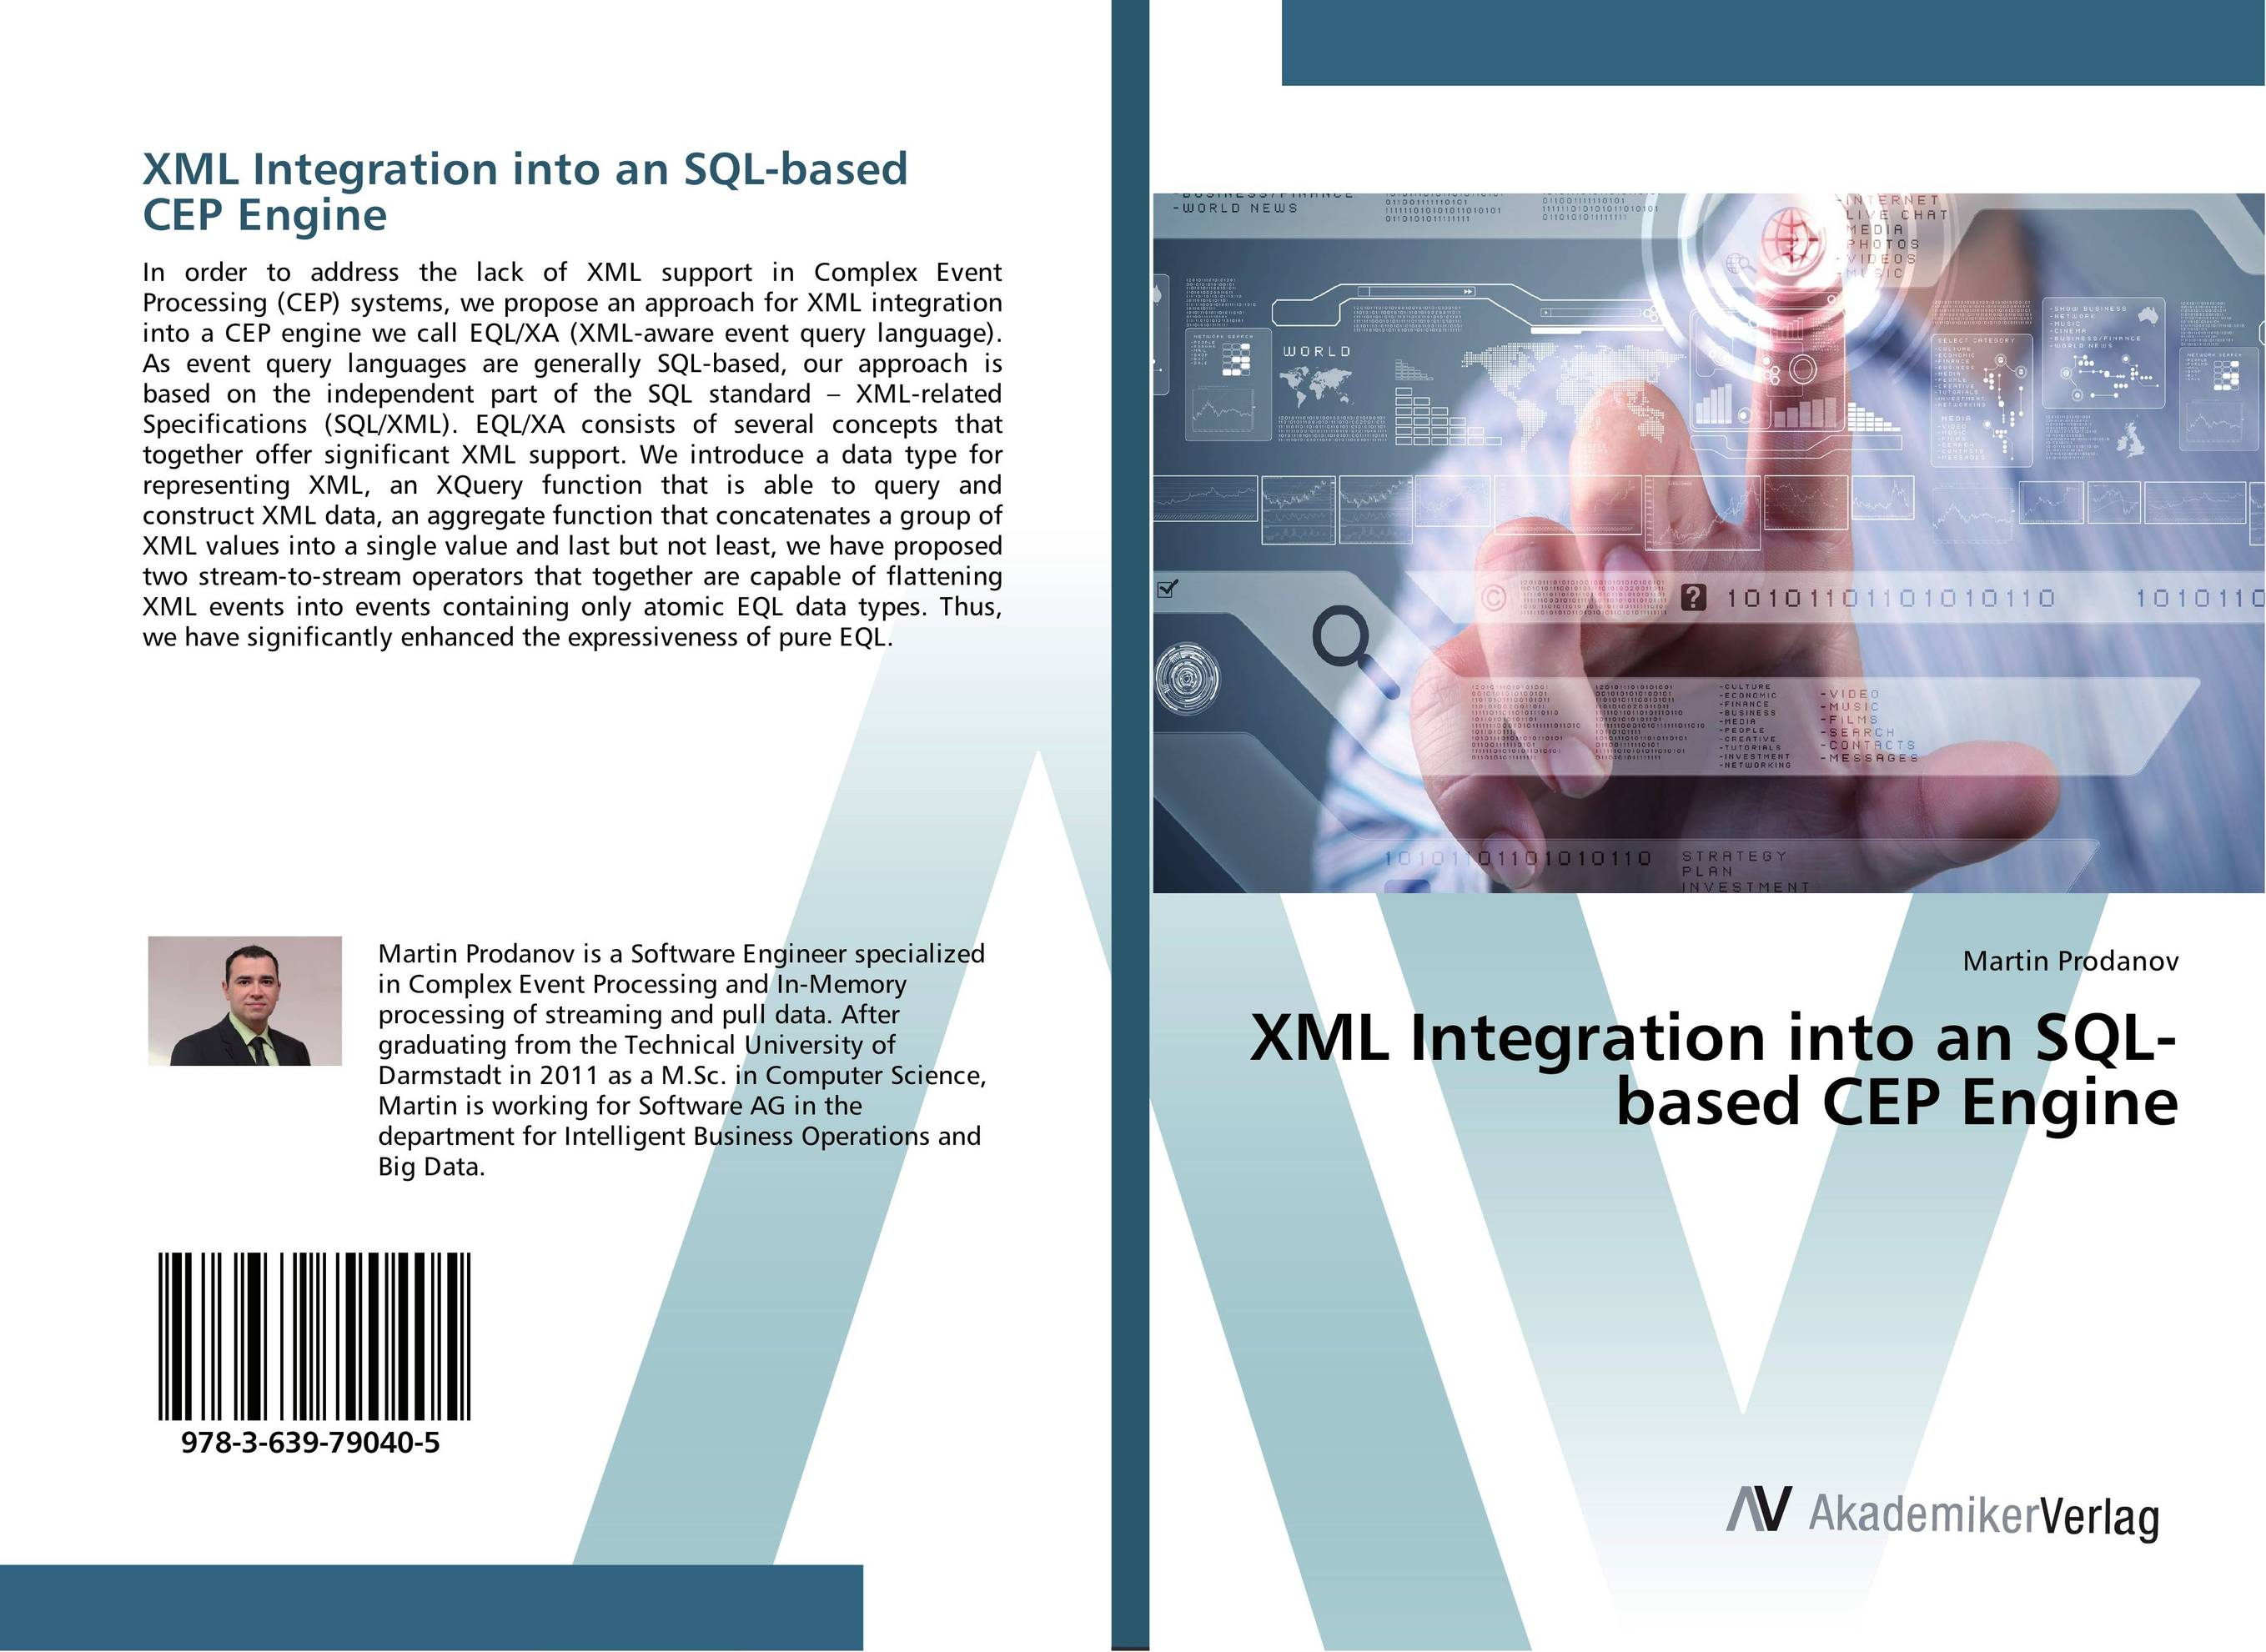 XML Integration into an SQL-based CEP Engine sitemap 439 xml